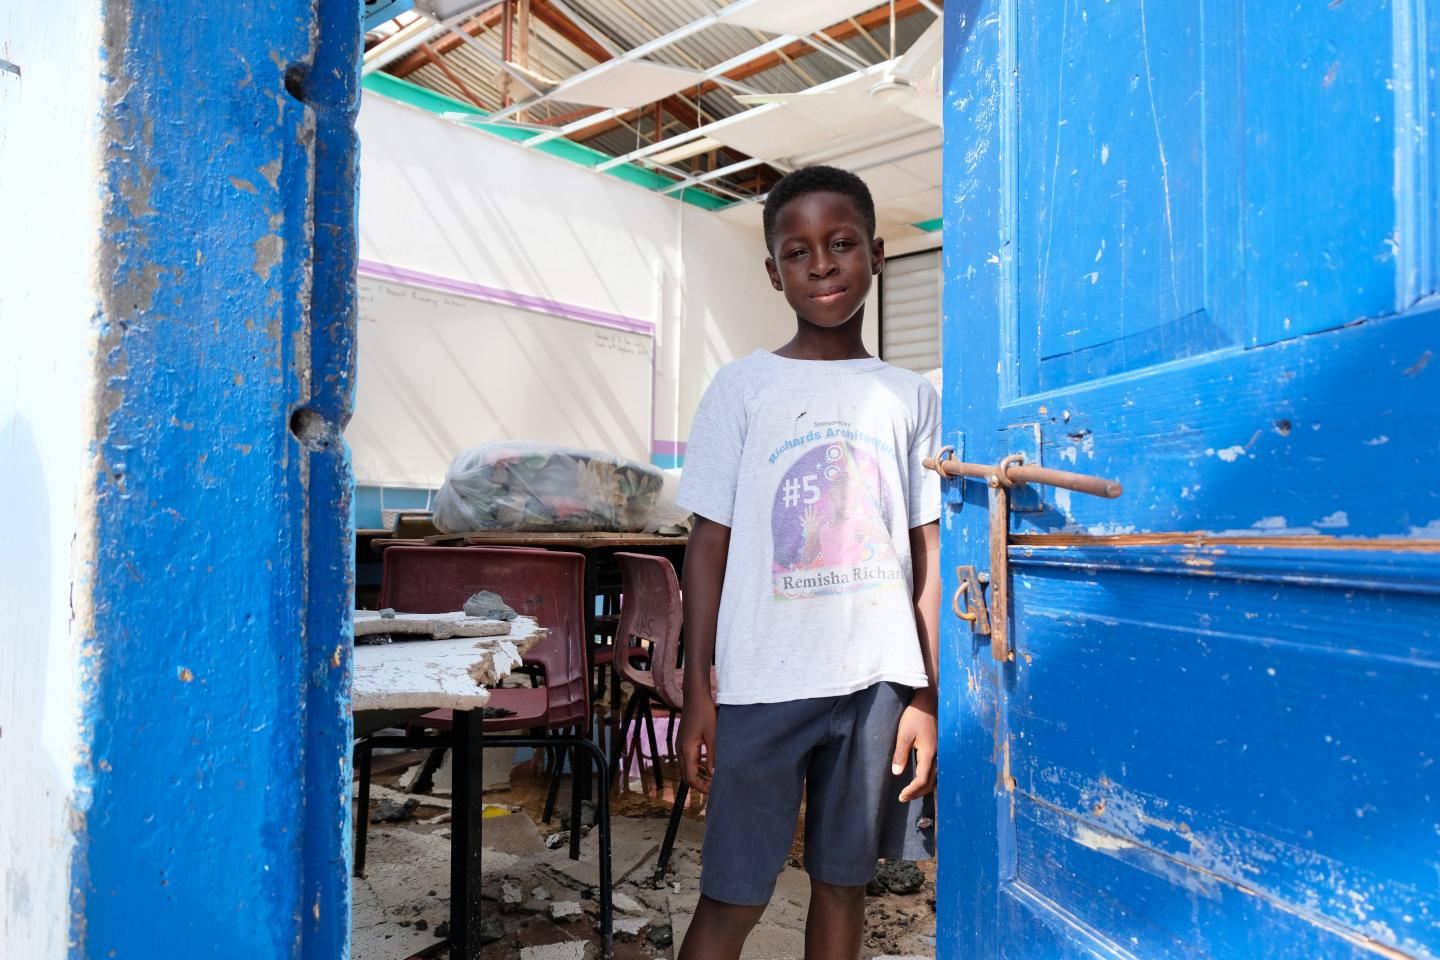 Children uprooted in the Caribbean   UNICEF